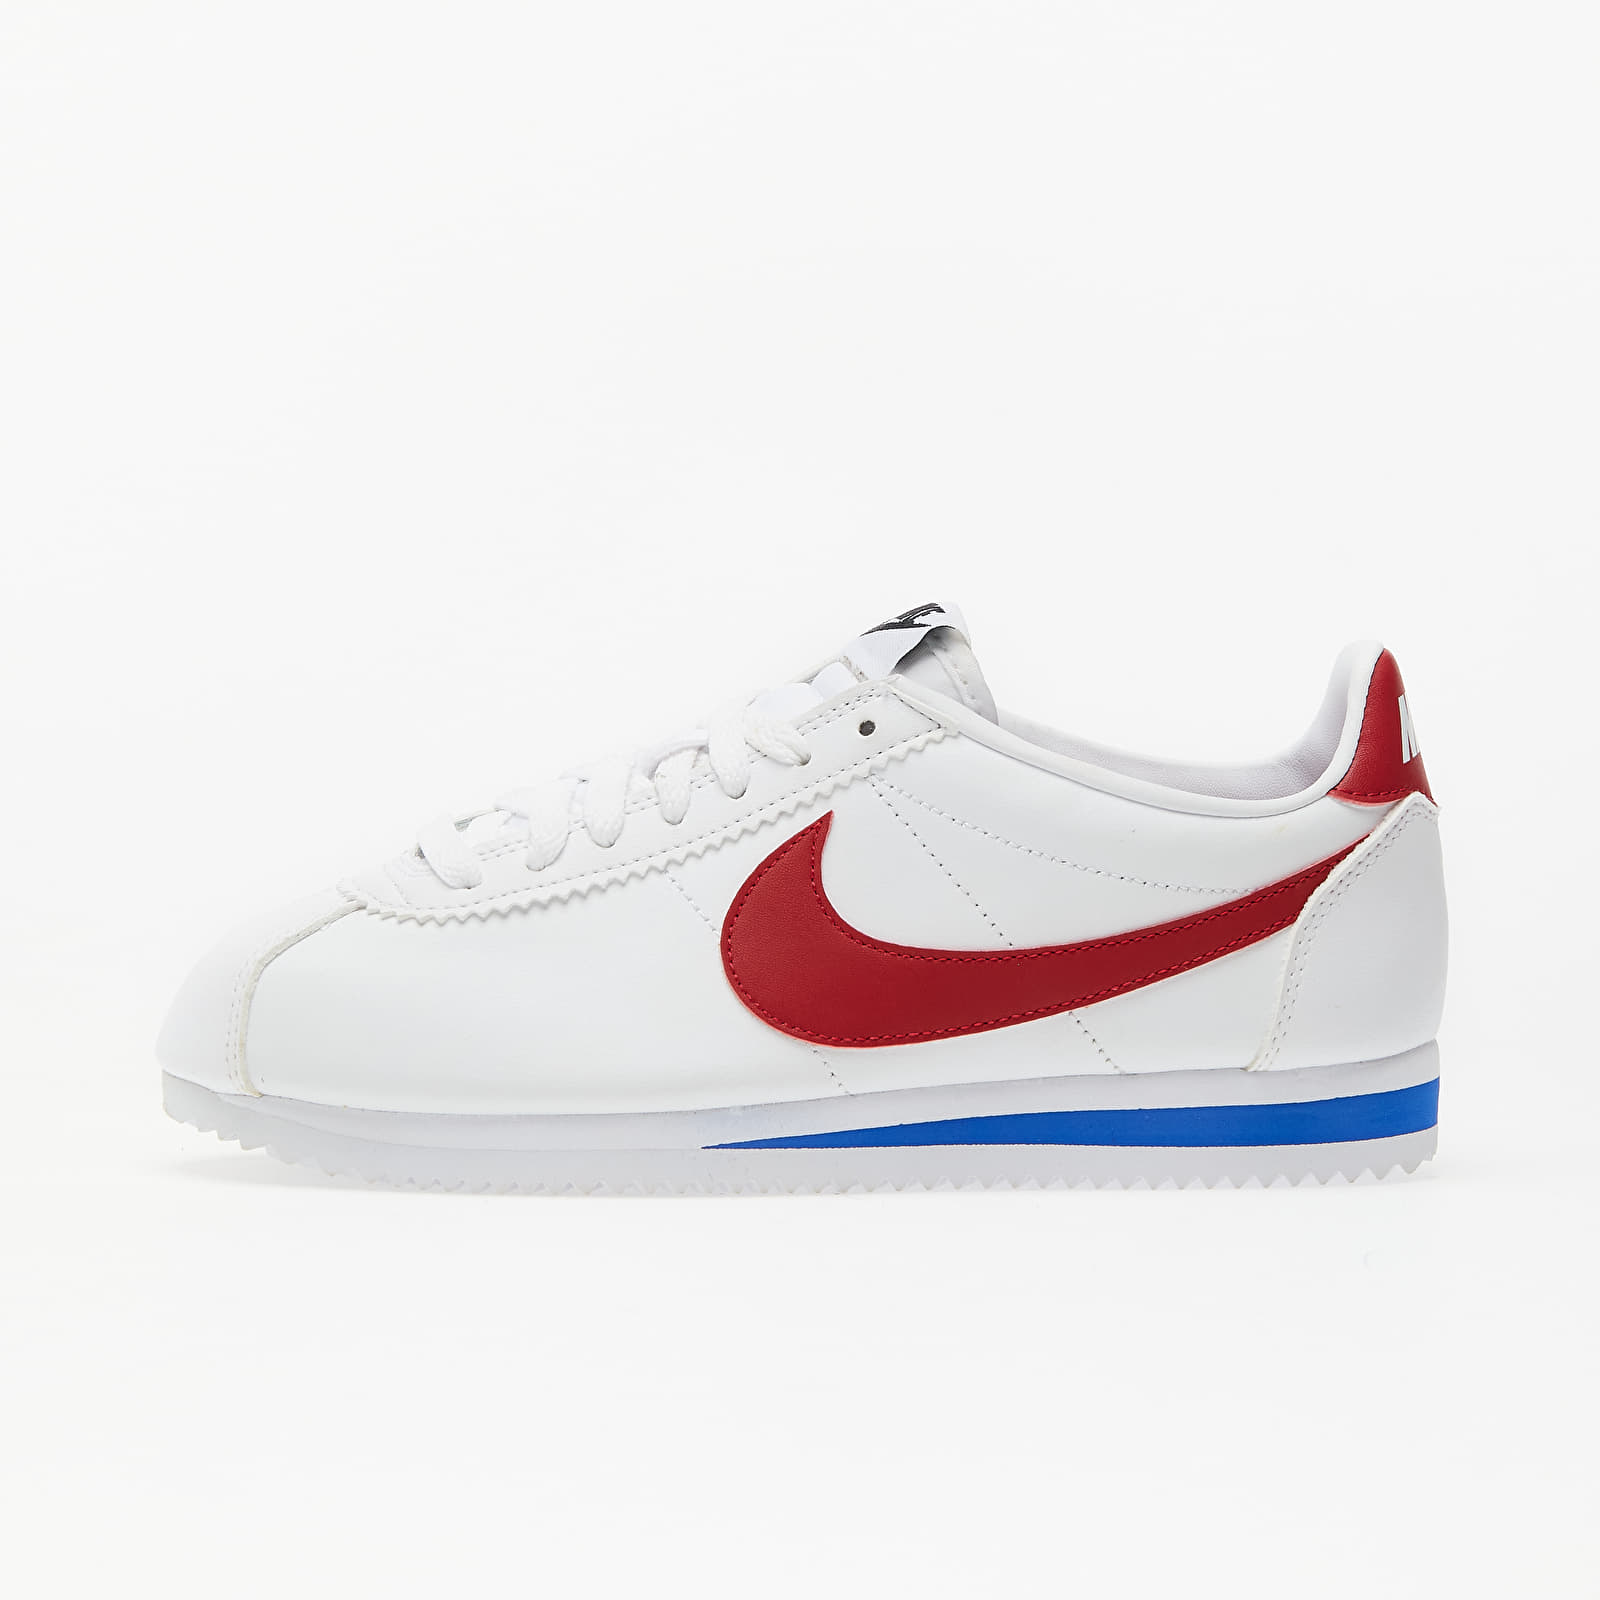 Women's shoes Nike Wmns Classic Cortez Leather White/ Varsity Red-Varsity Royal